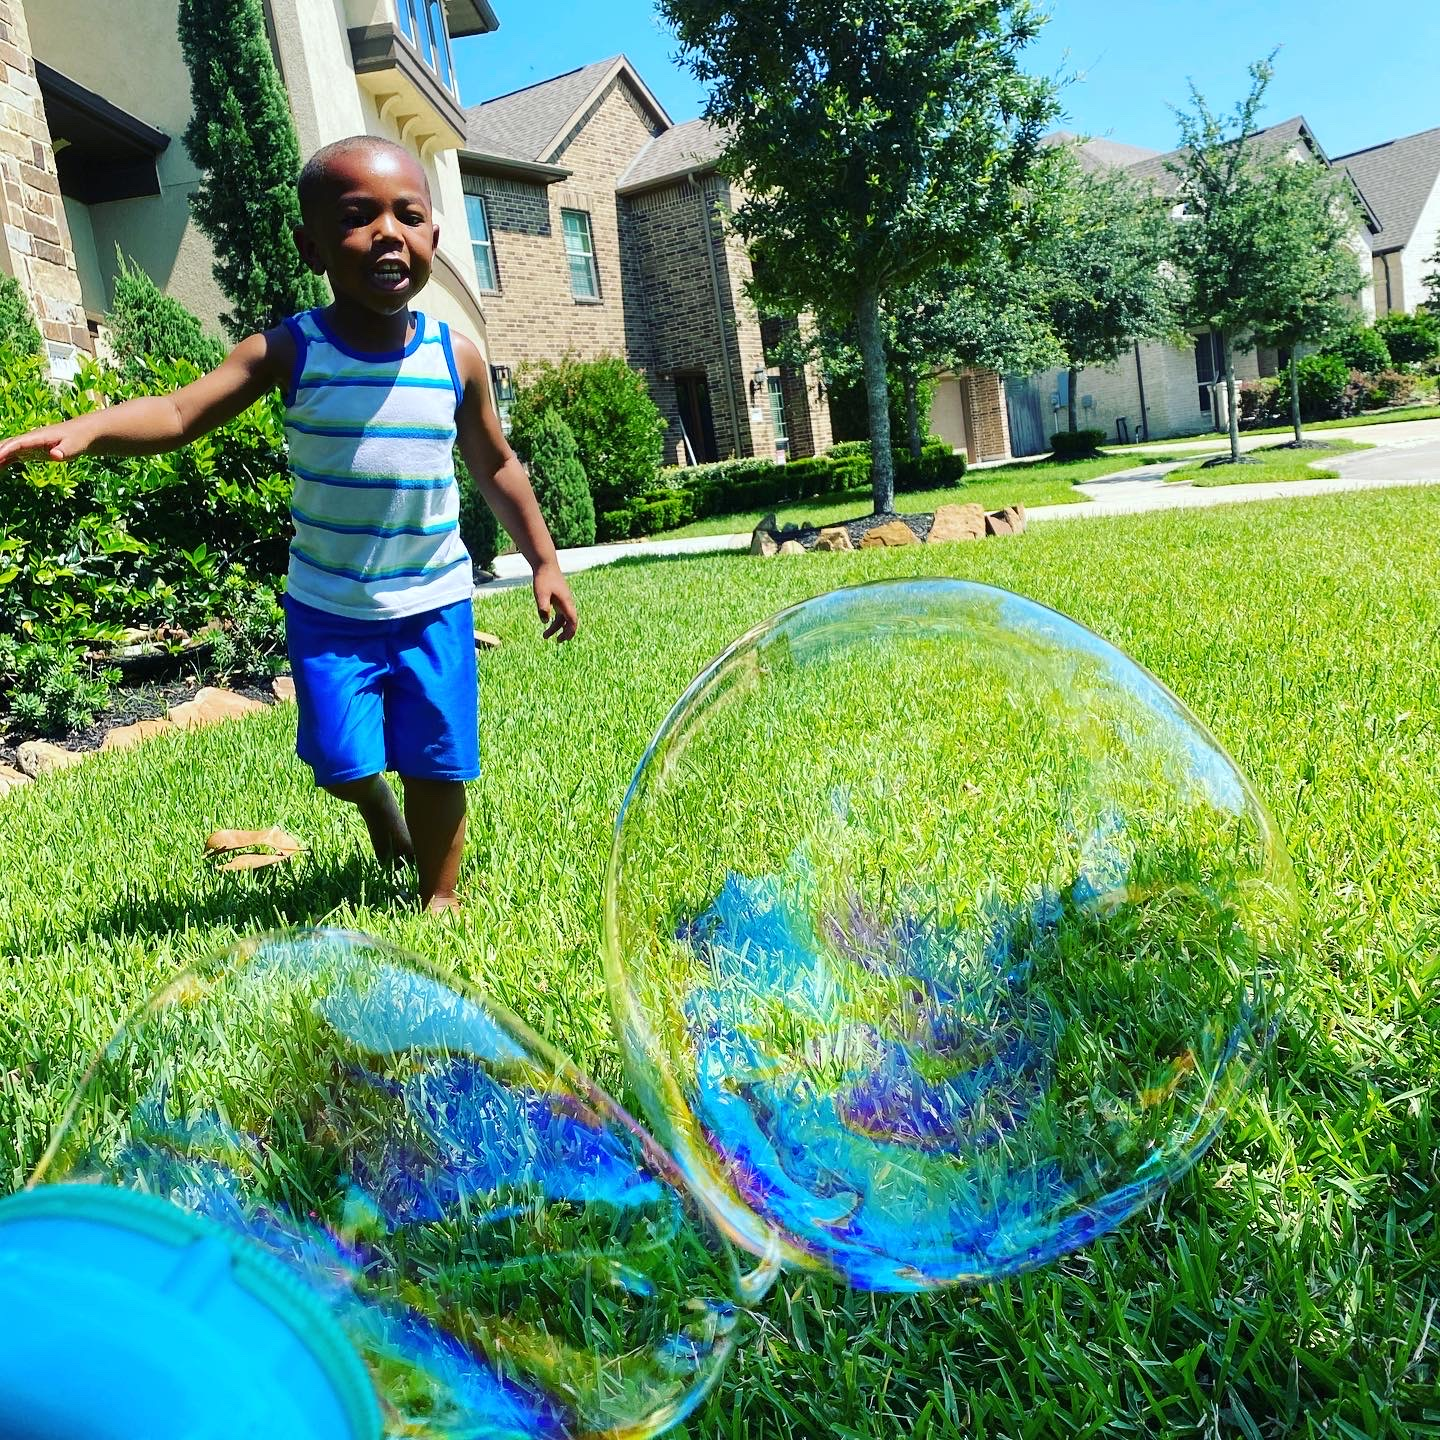 little boy with bubbles, good in a hard situation